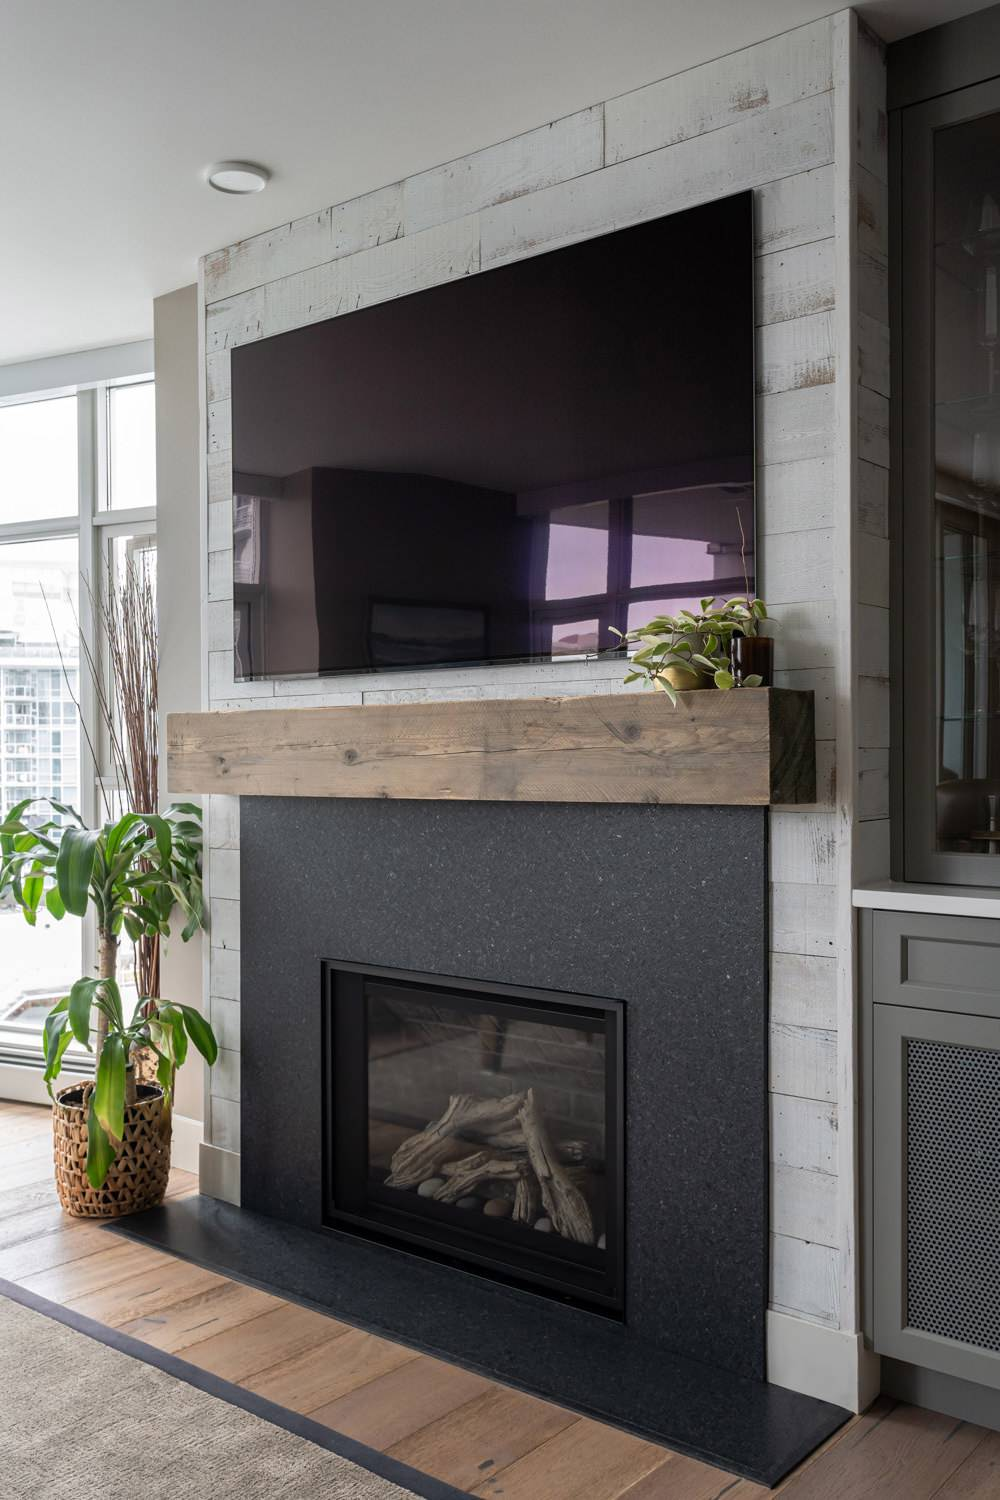 hutch and fireplace